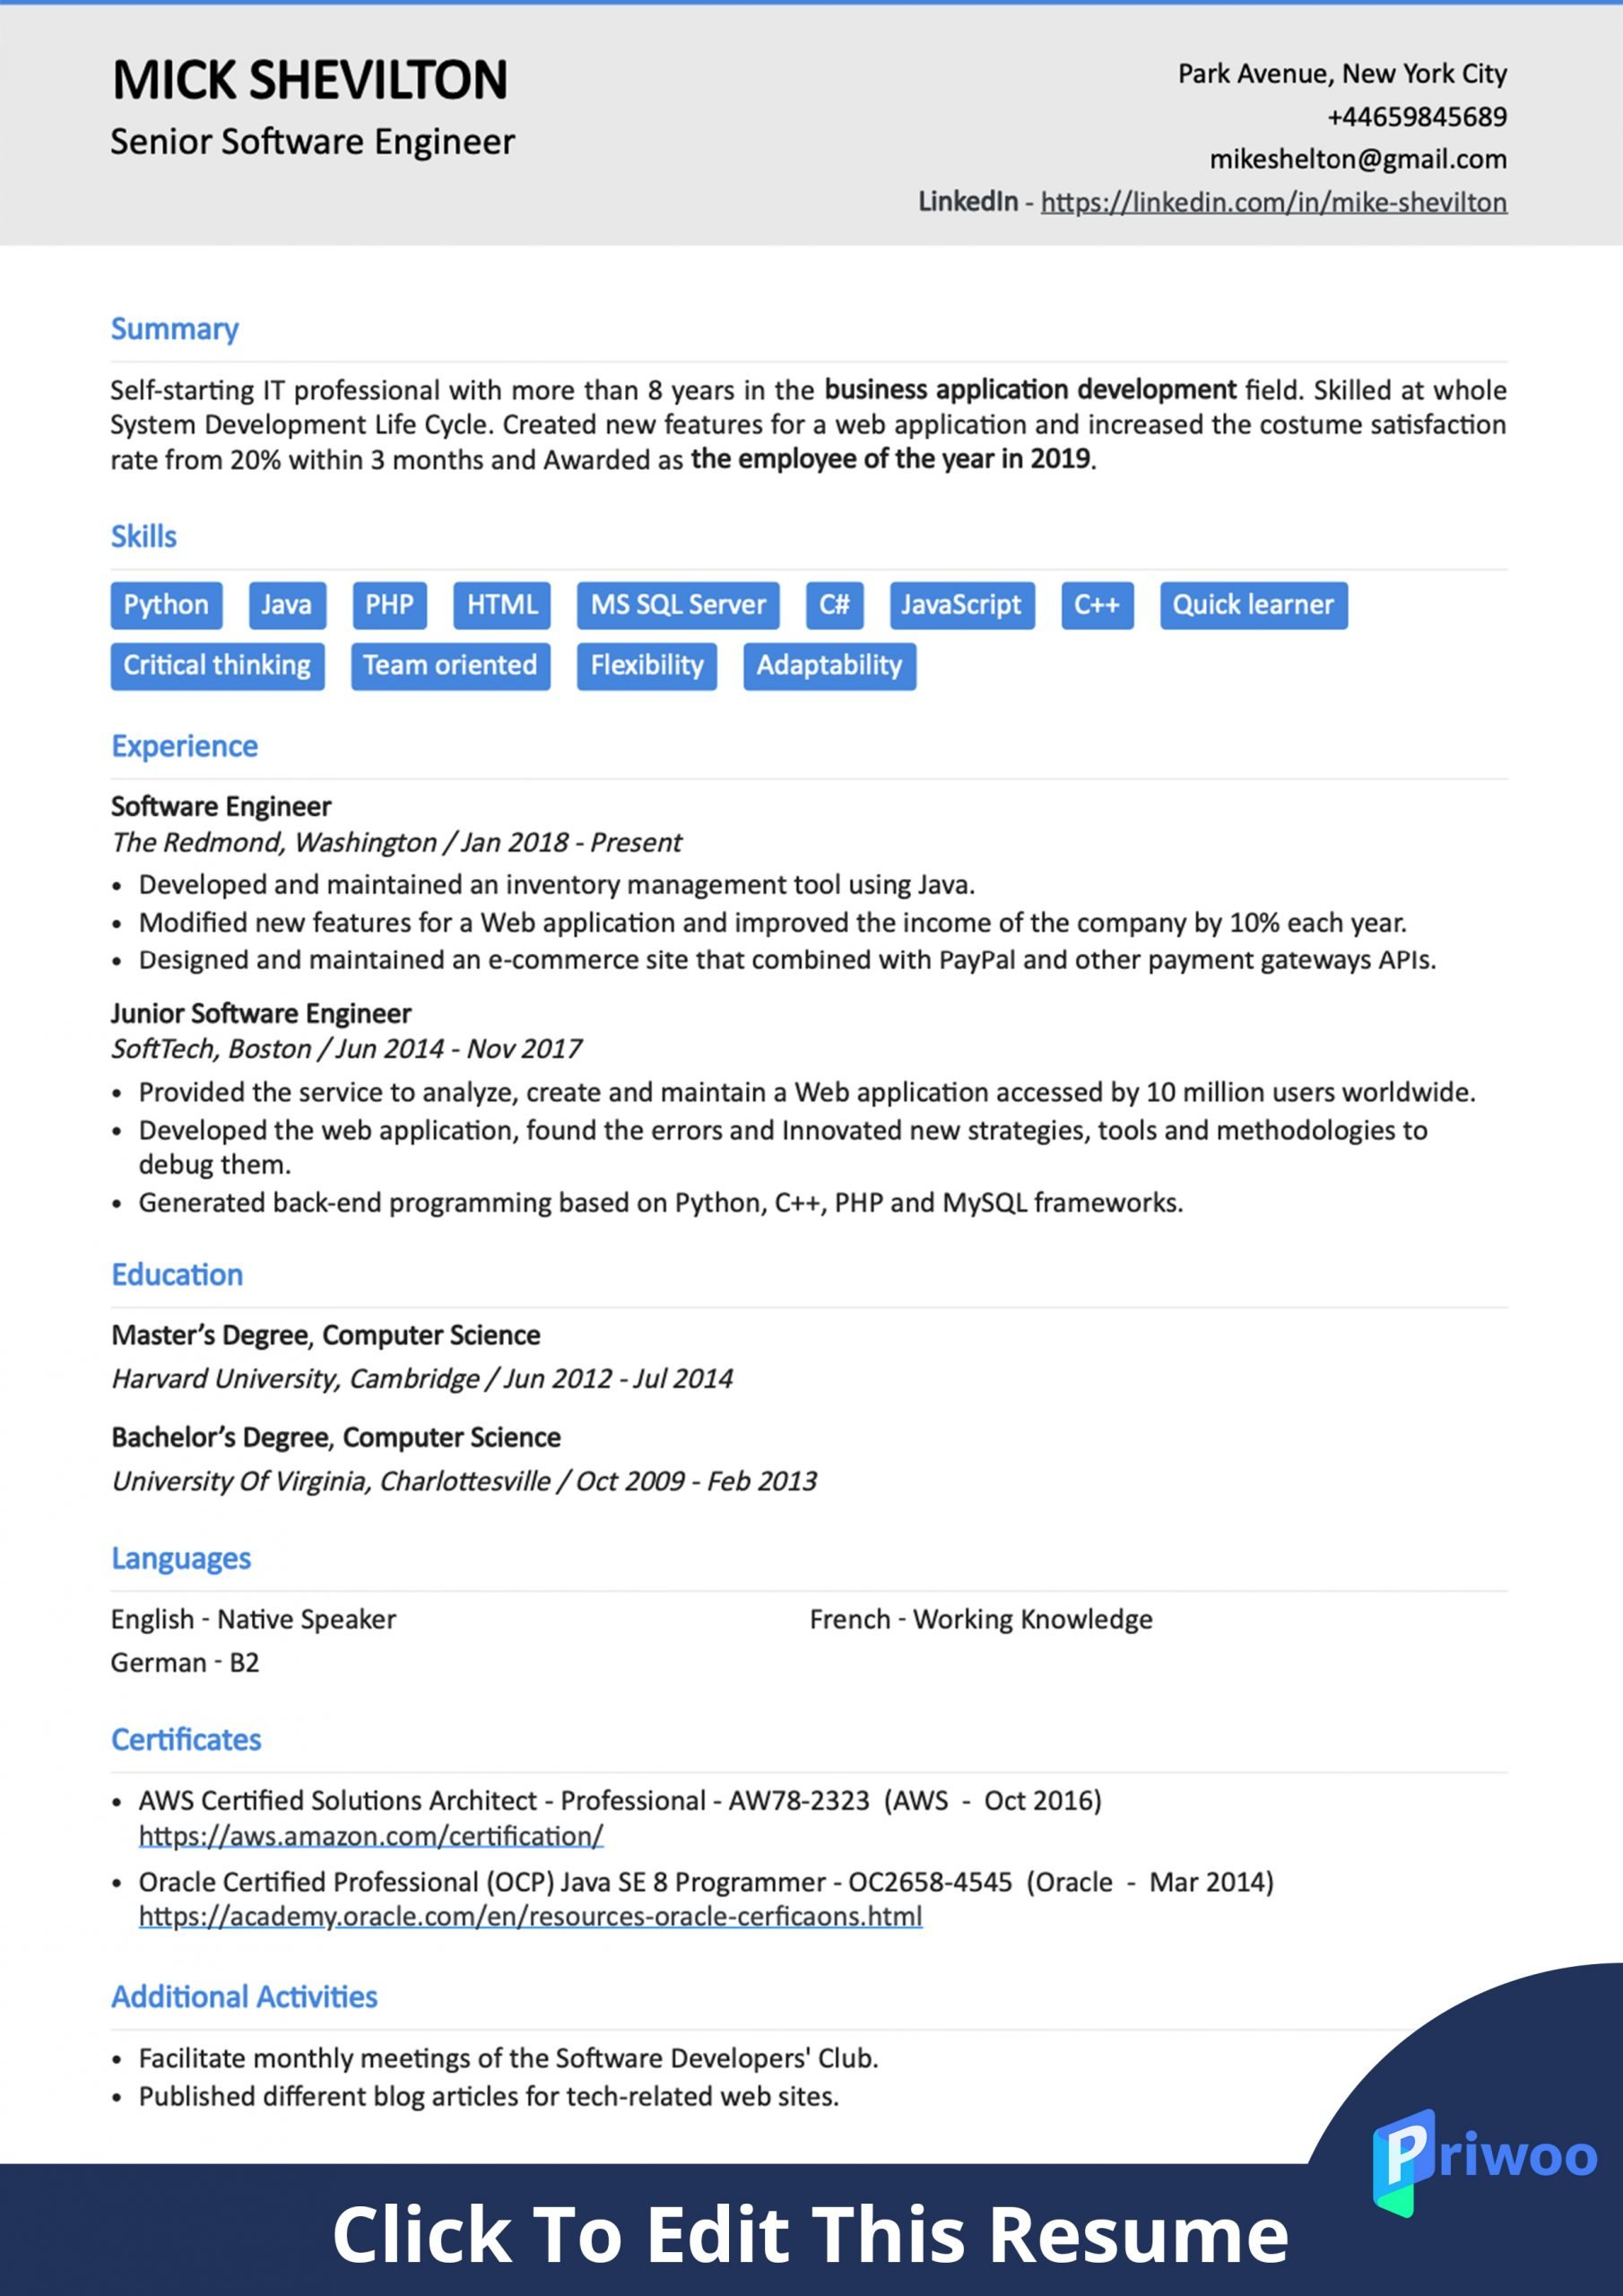 software engineer resume example best action verbs skills priwoo create for scaled Resume Create Resume For Software Engineer